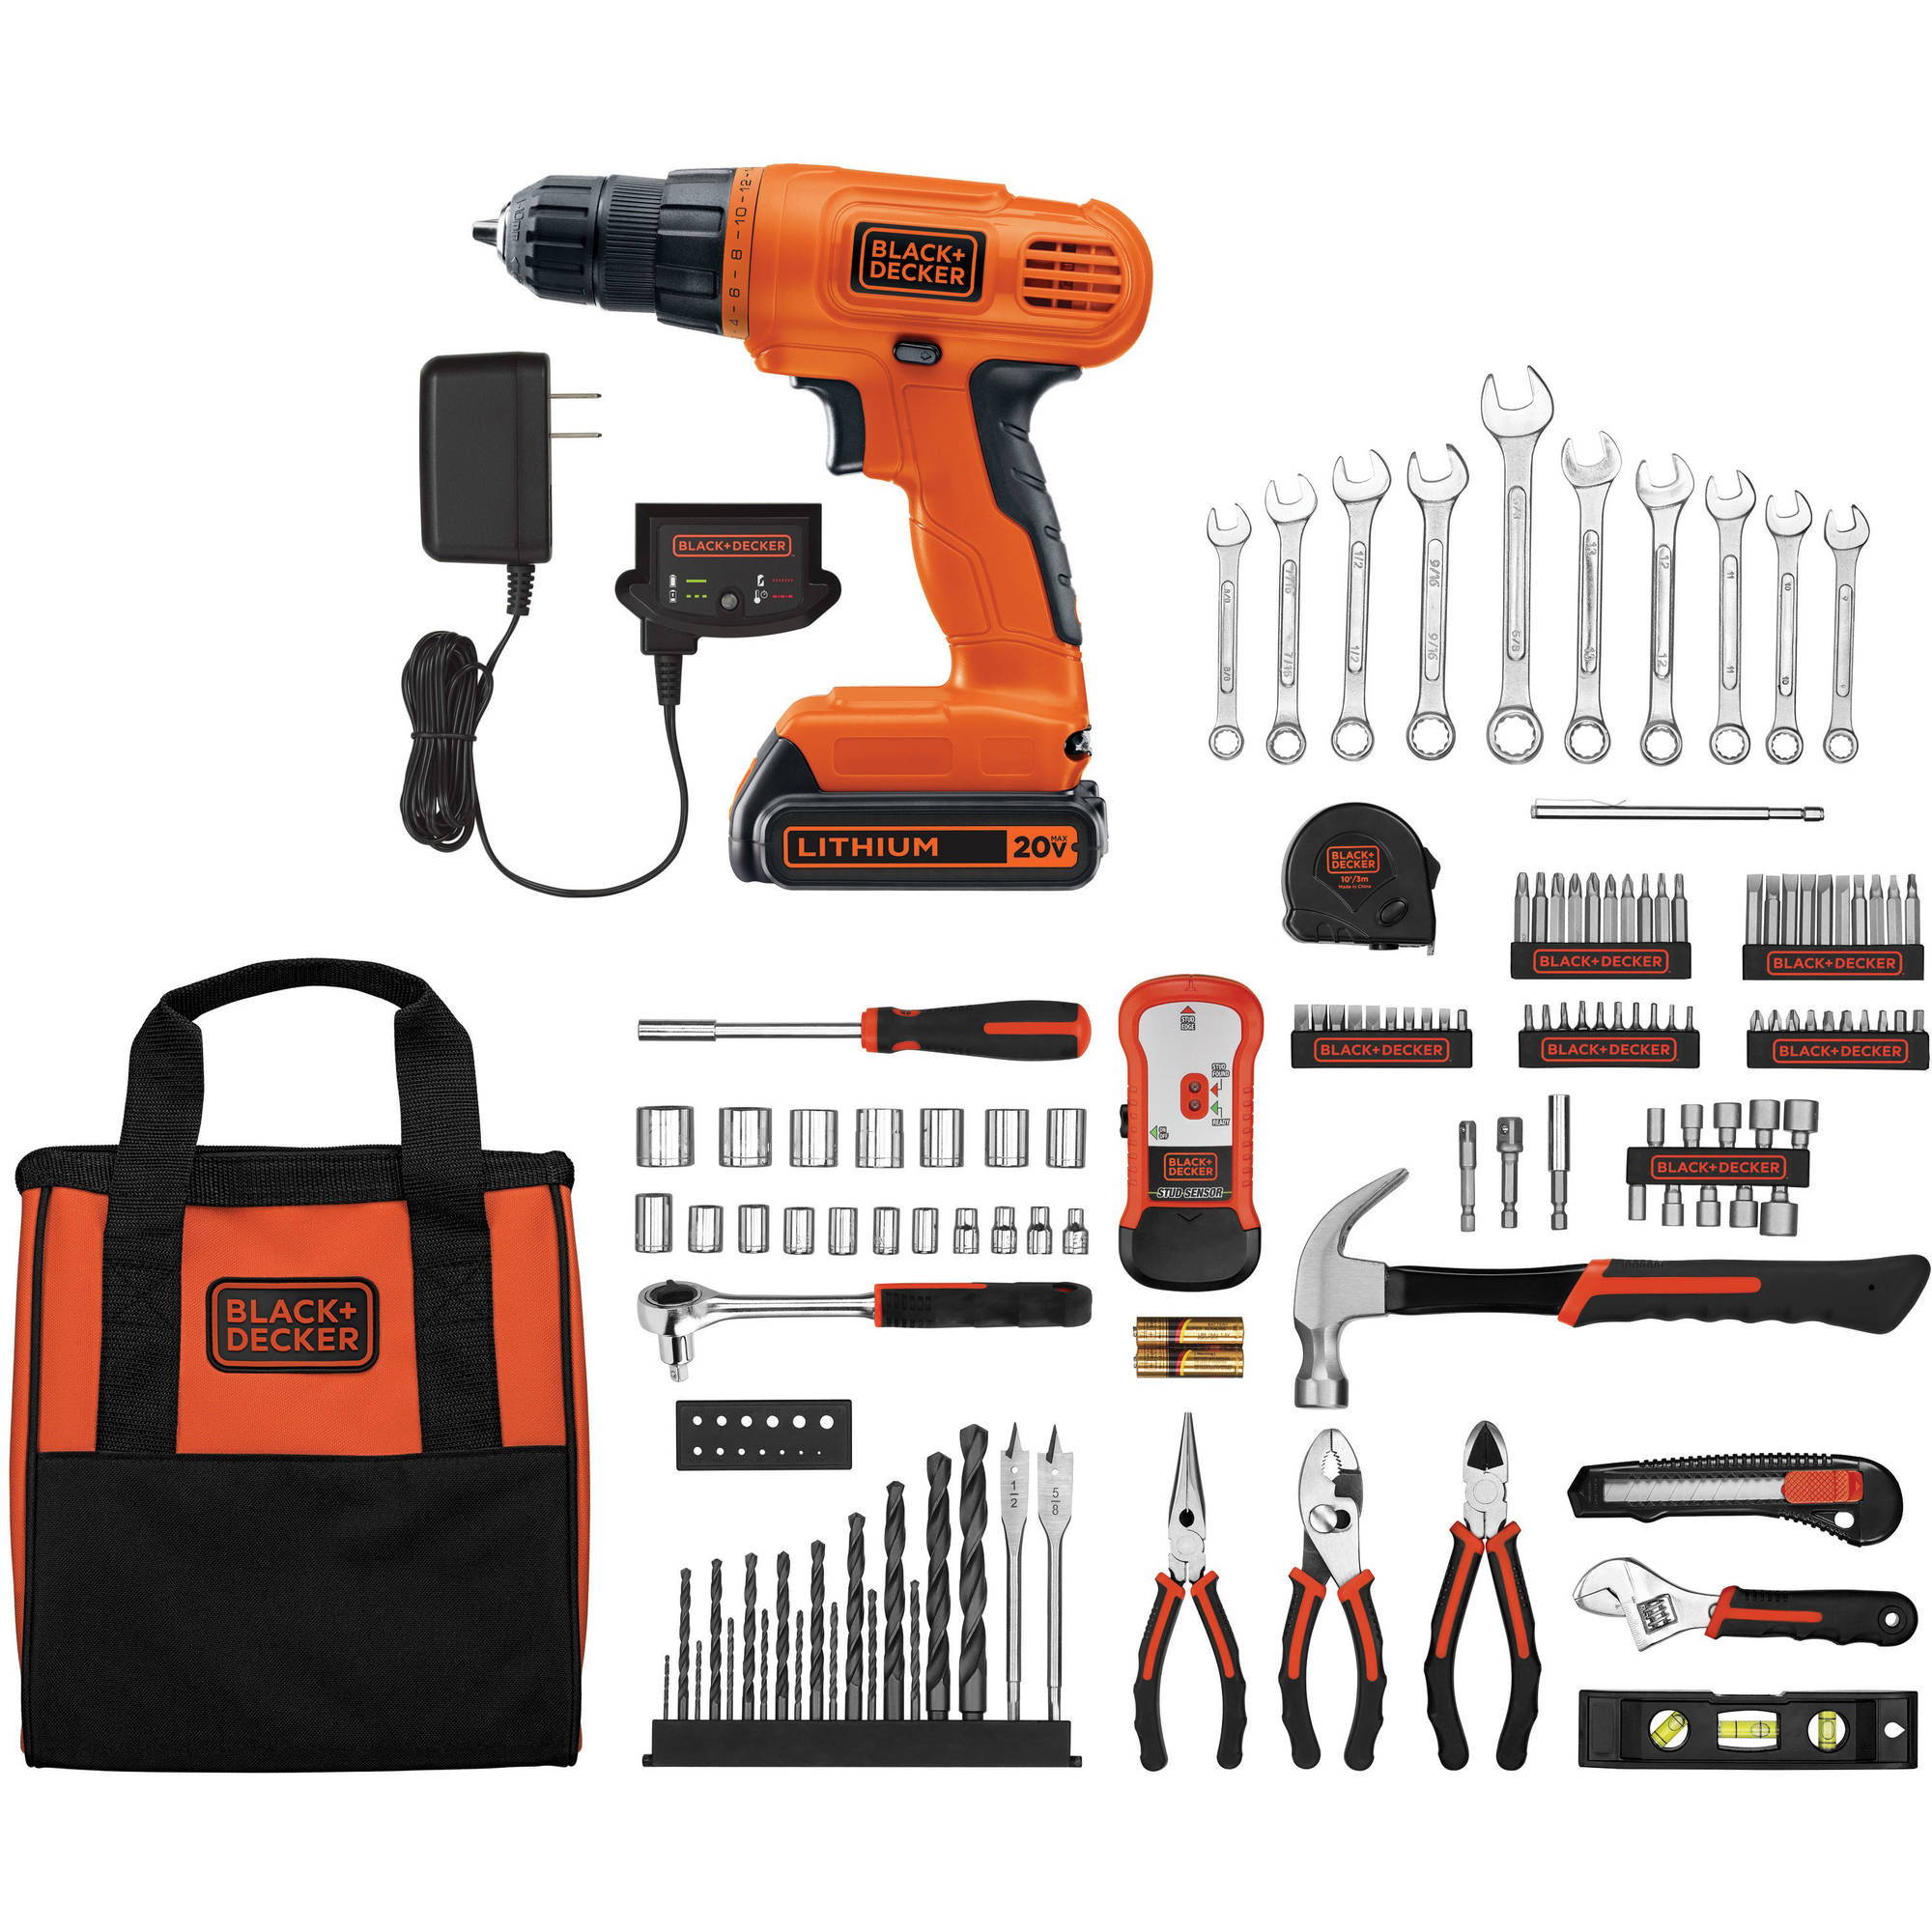 Black and Decker 20V Lithium Drill/Driver with 128-Piece Project Kit